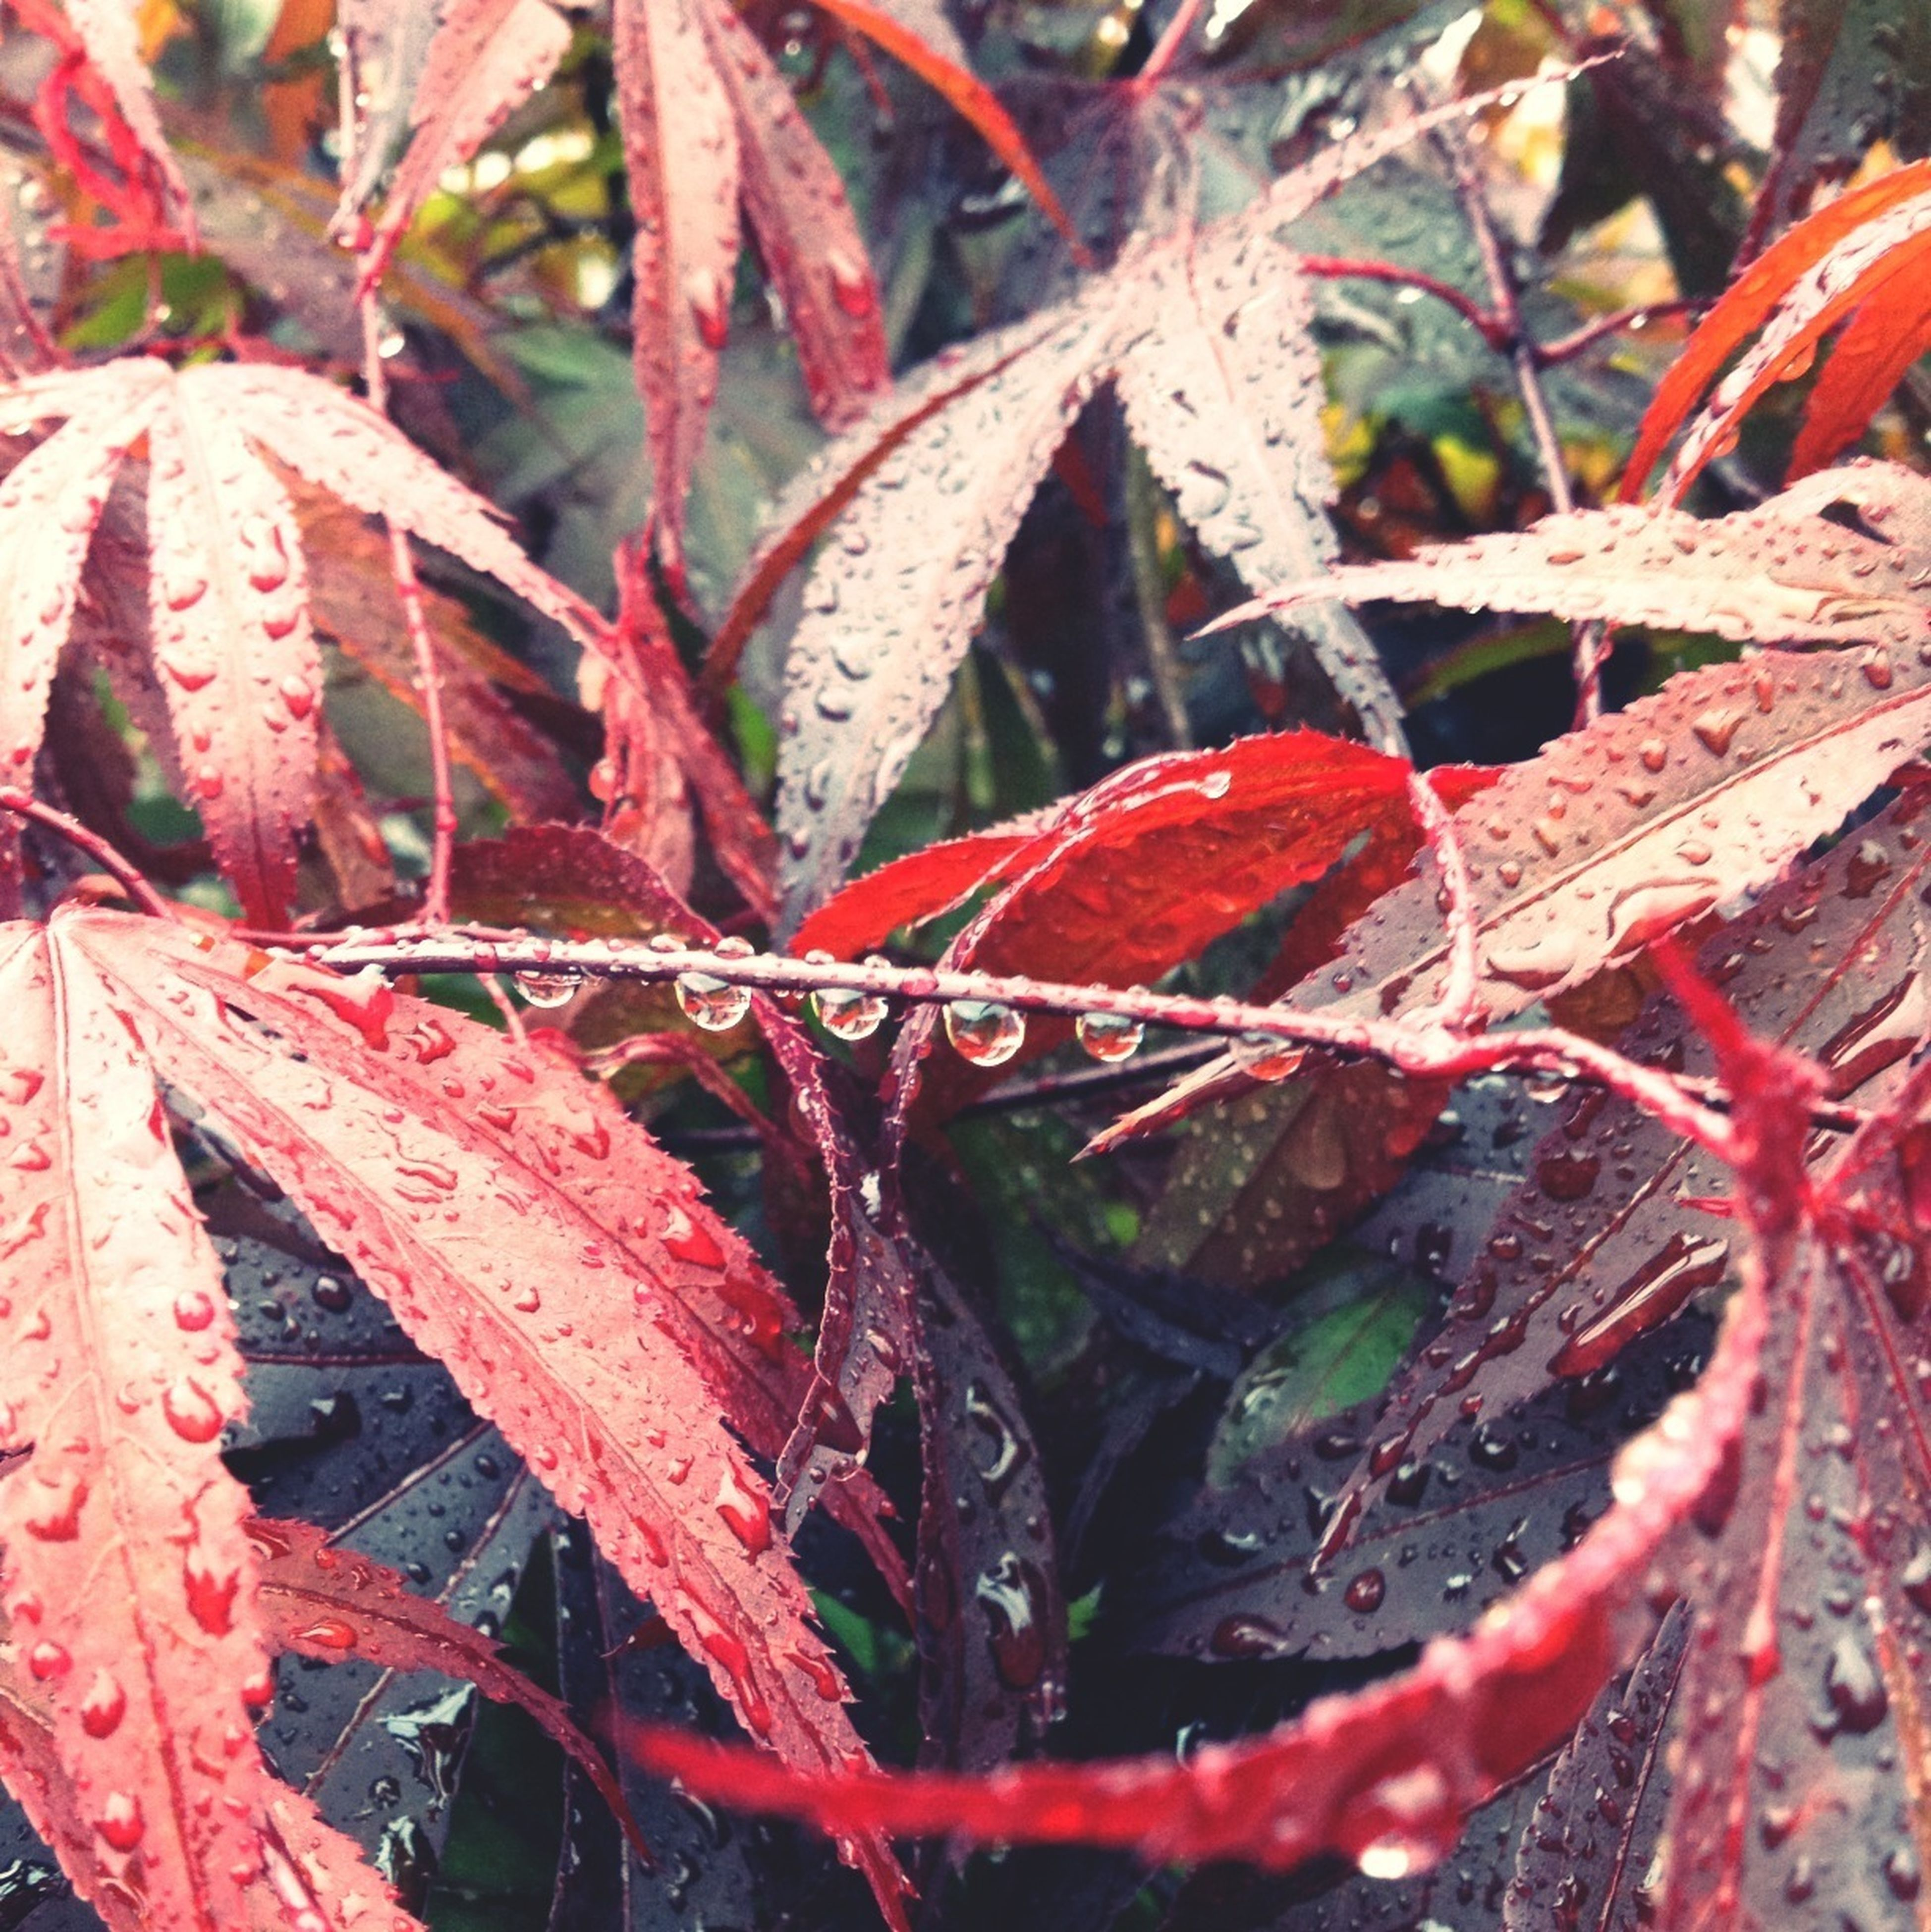 leaf, red, season, close-up, nature, growth, drop, autumn, water, plant, change, beauty in nature, wet, focus on foreground, weather, tranquility, branch, leaves, day, outdoors